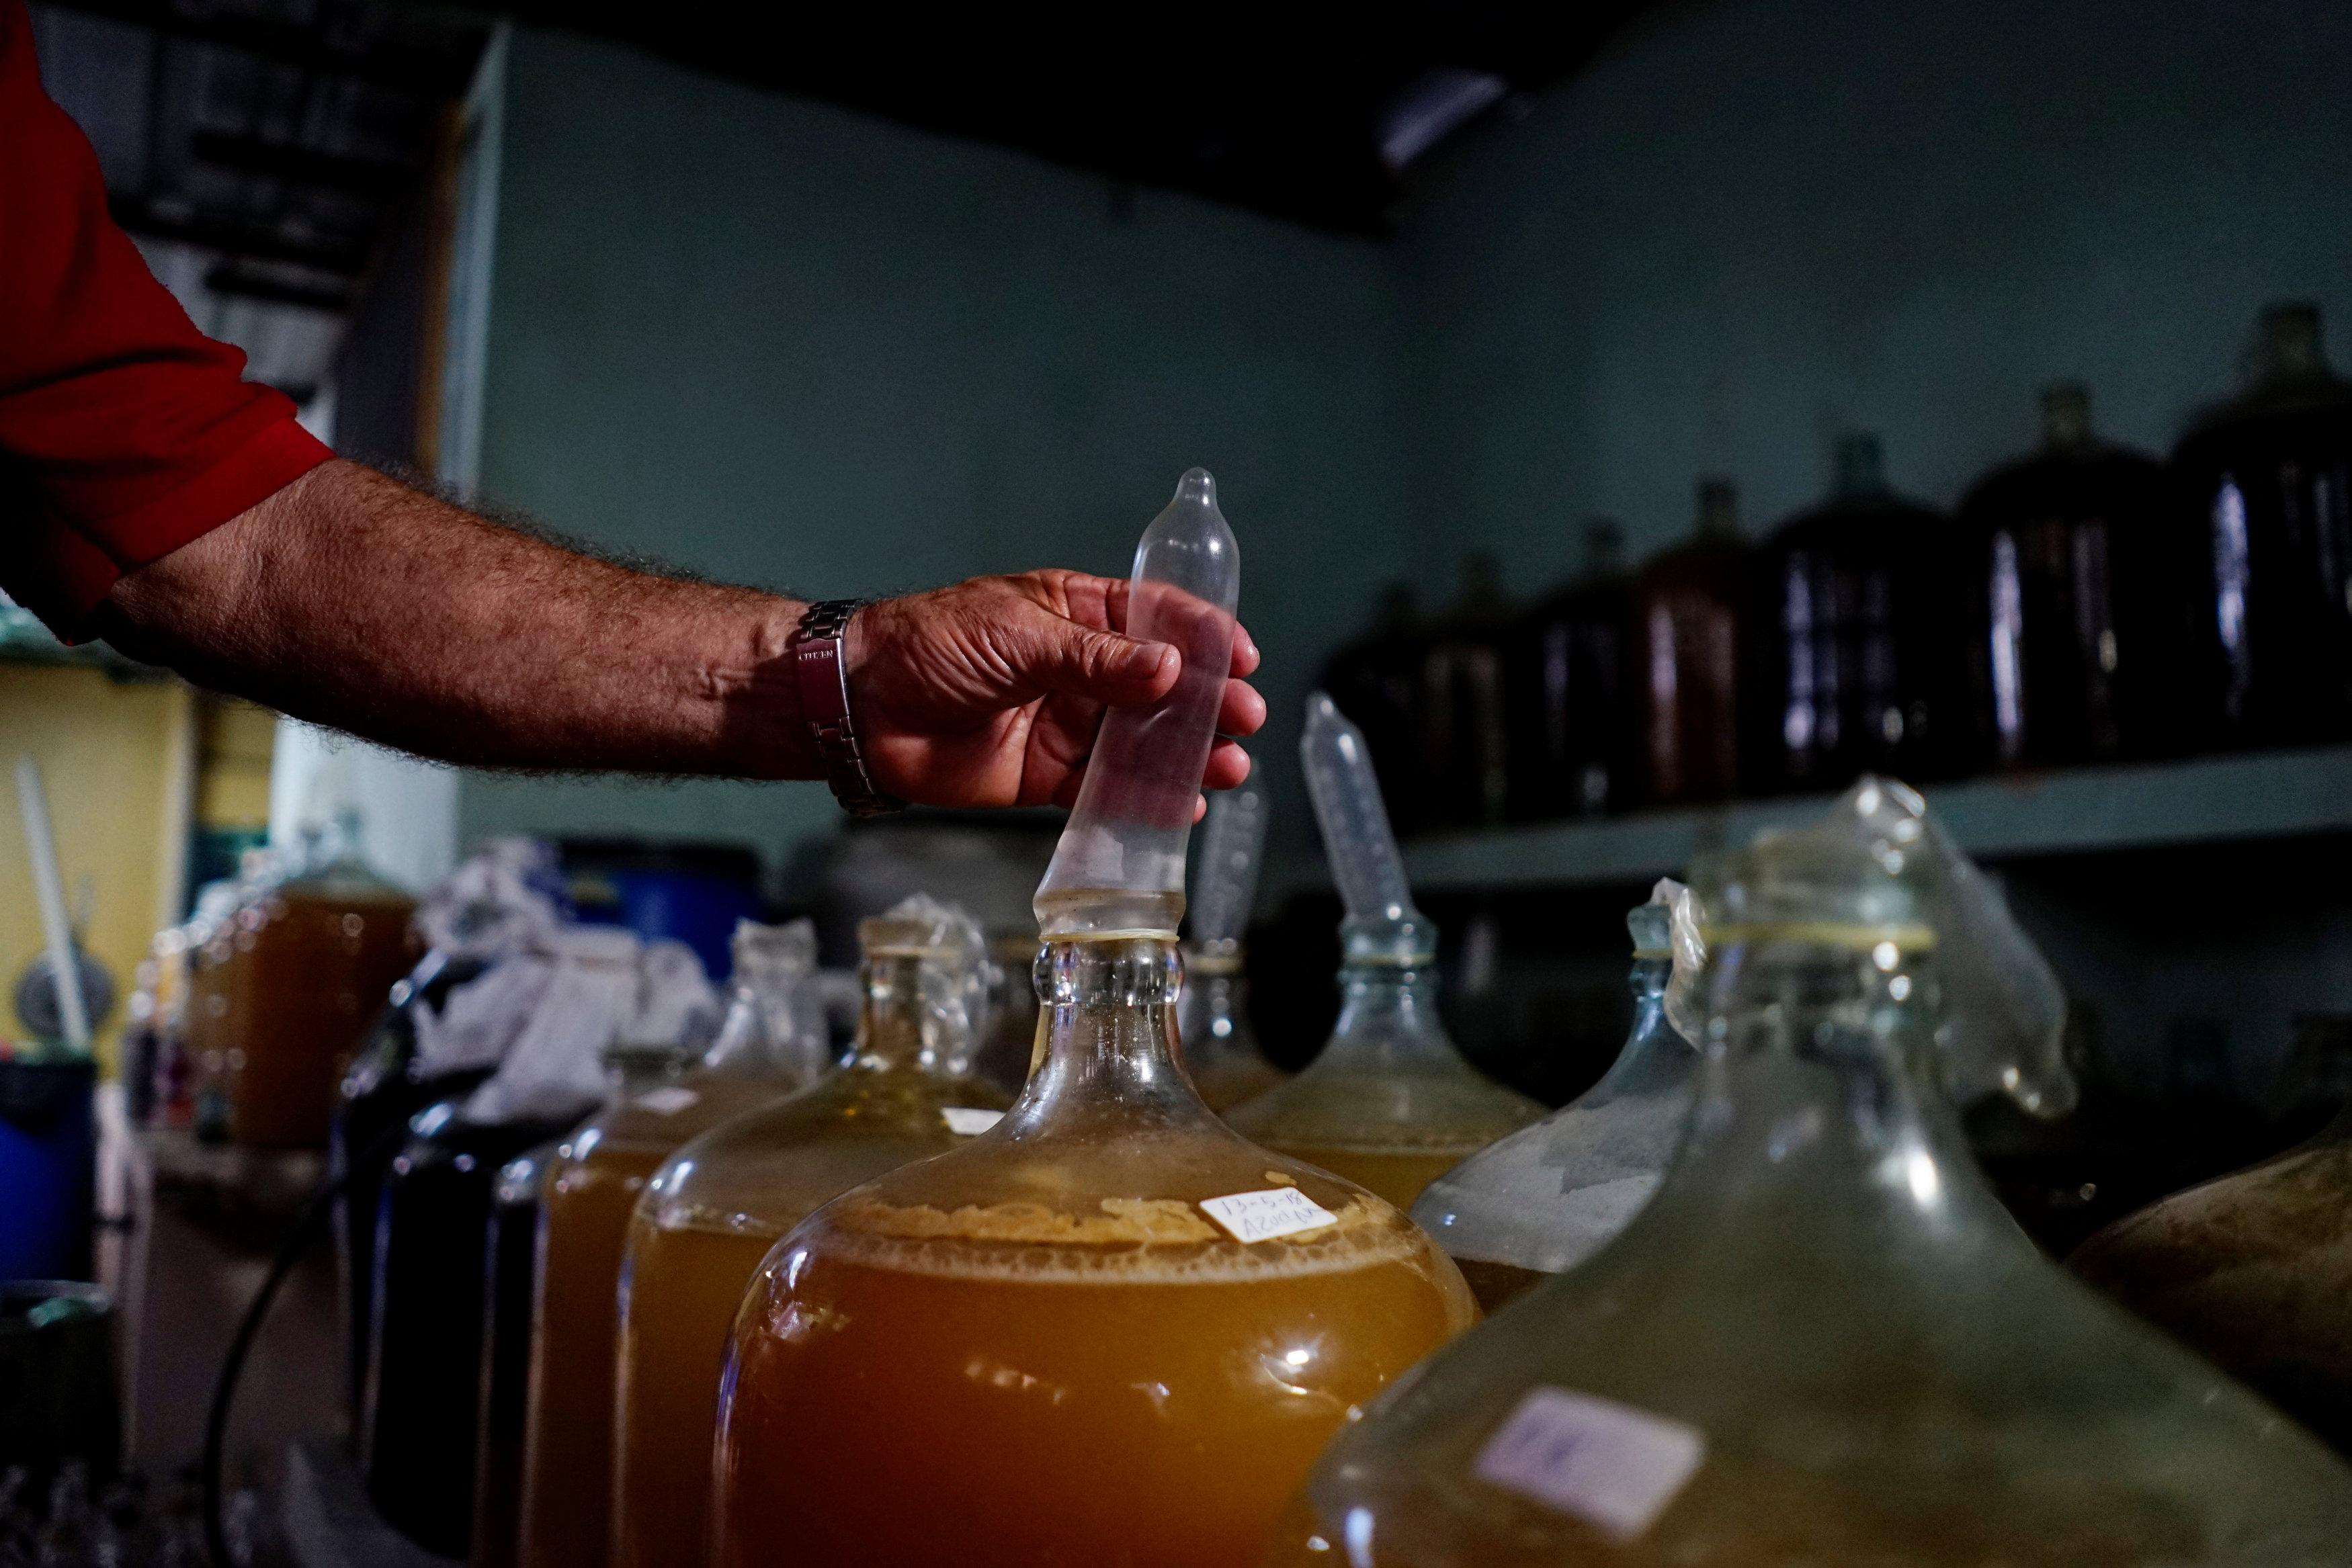 Orestes Estevez checks a condom used in the production of wine in his makeshift winery in Havana, Cuba, May 16, 2018. Picture taken on May 16, 2018. Alexandre Meneghini